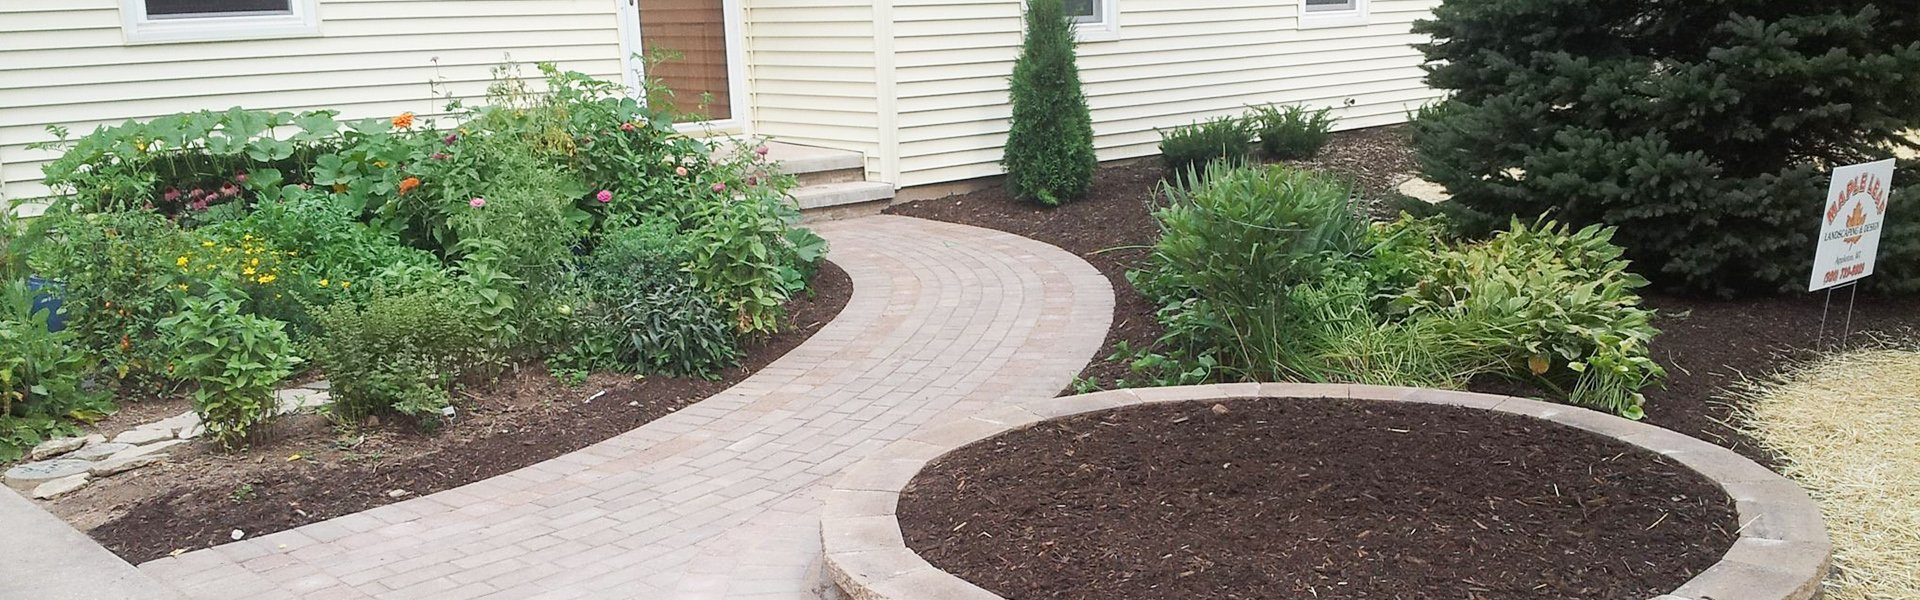 Walkway with planter